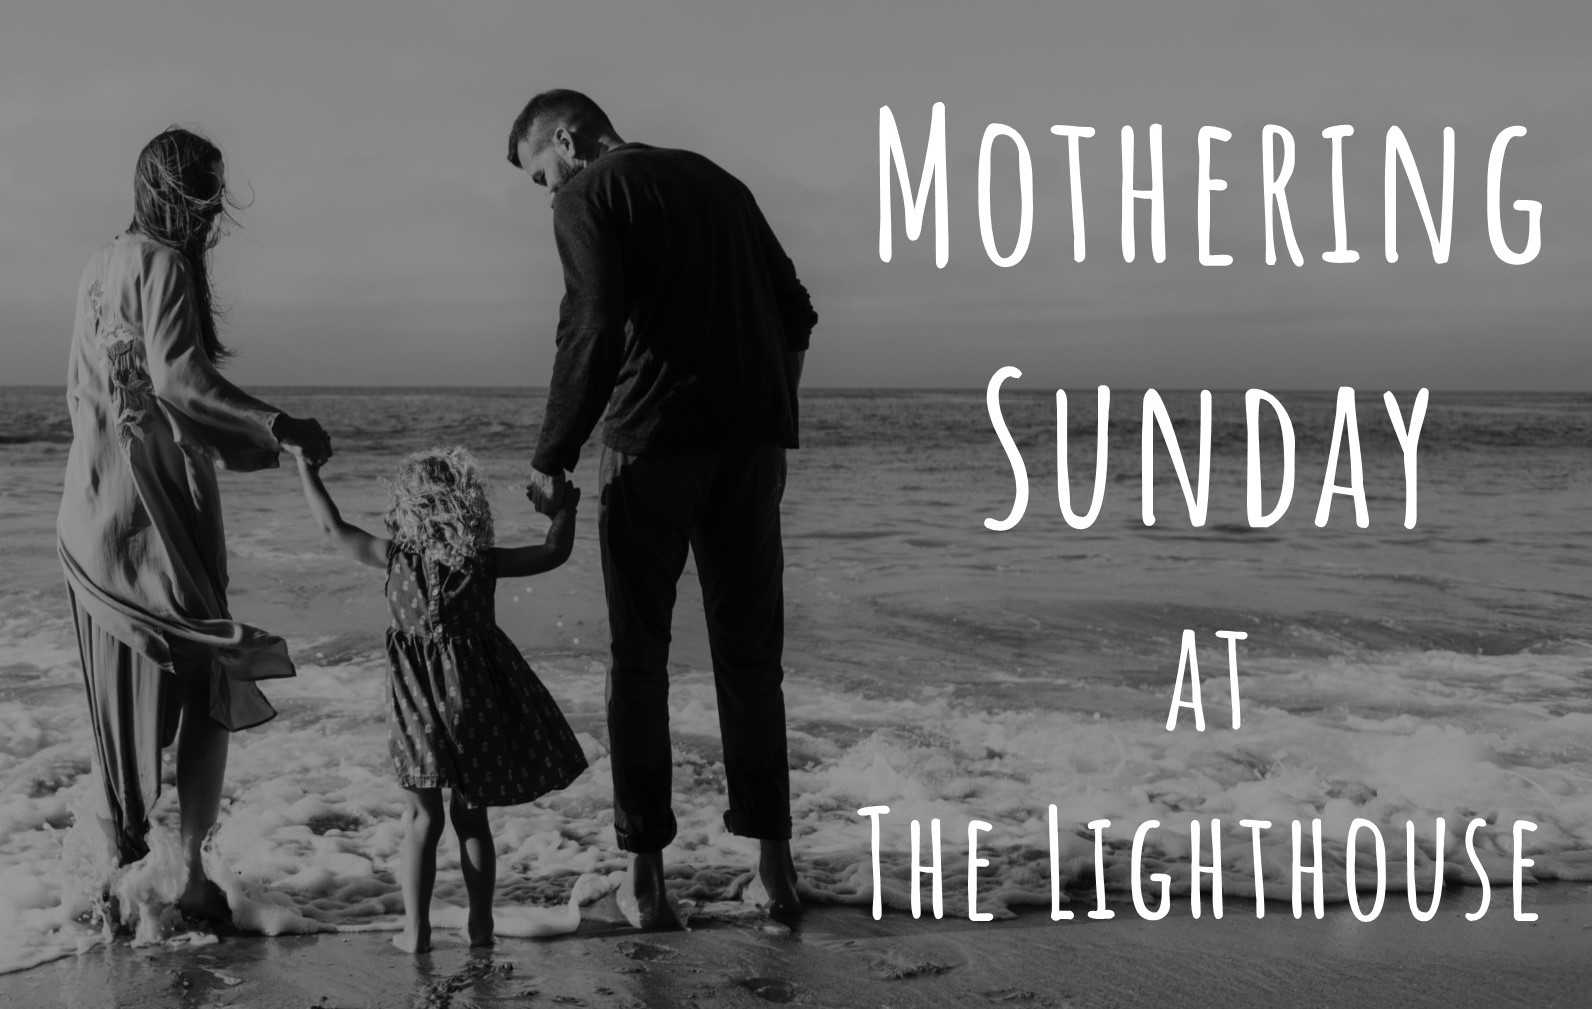 LH Mothering Sunday Website Banner.jpg